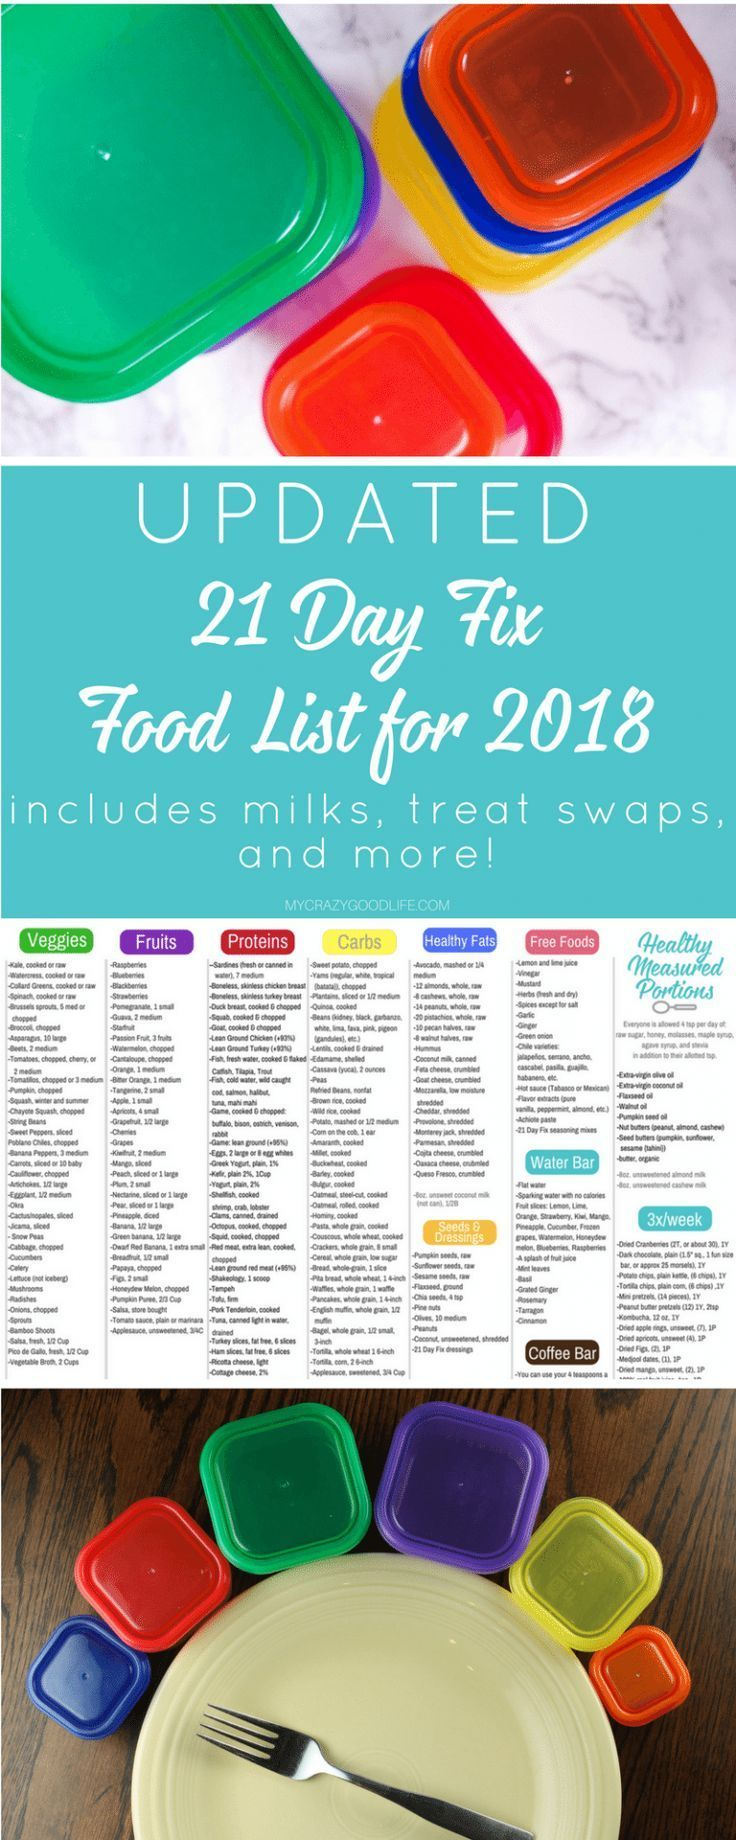 I've created a complete updated food list that includes the basic 21 Day Fix food list, the Shakeology and protein shake bases (your 21 Day Fix milk options), free foods, and all of your 21 Day Fix treat swap options. Enjoy! #21dayfix #beachbody #foodlist